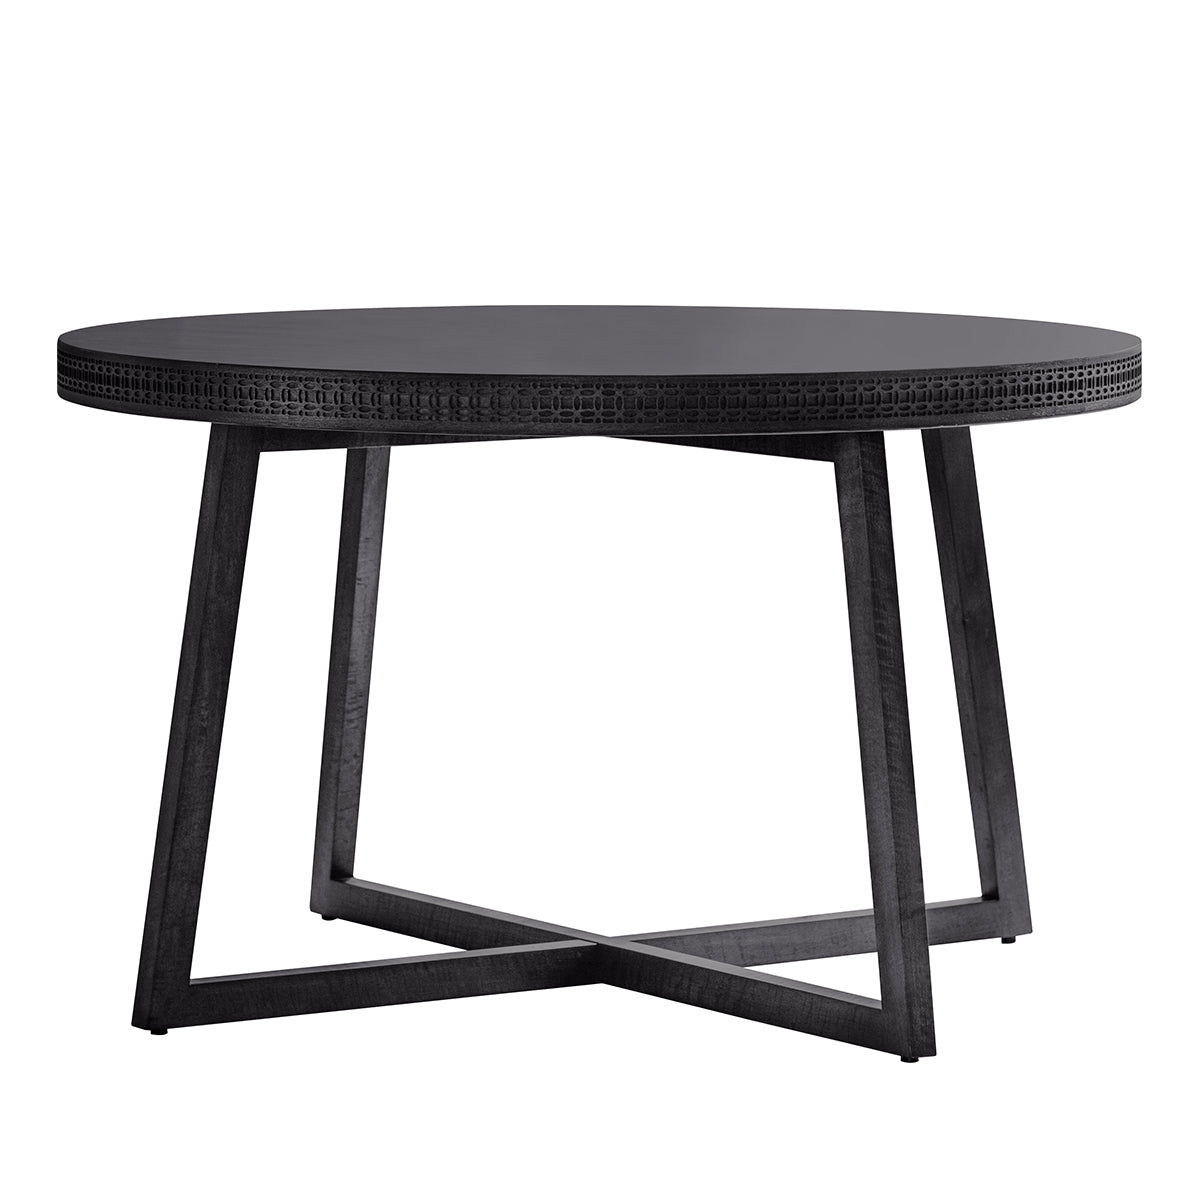 Greenwich Round Dining Table in Matt Charcoal